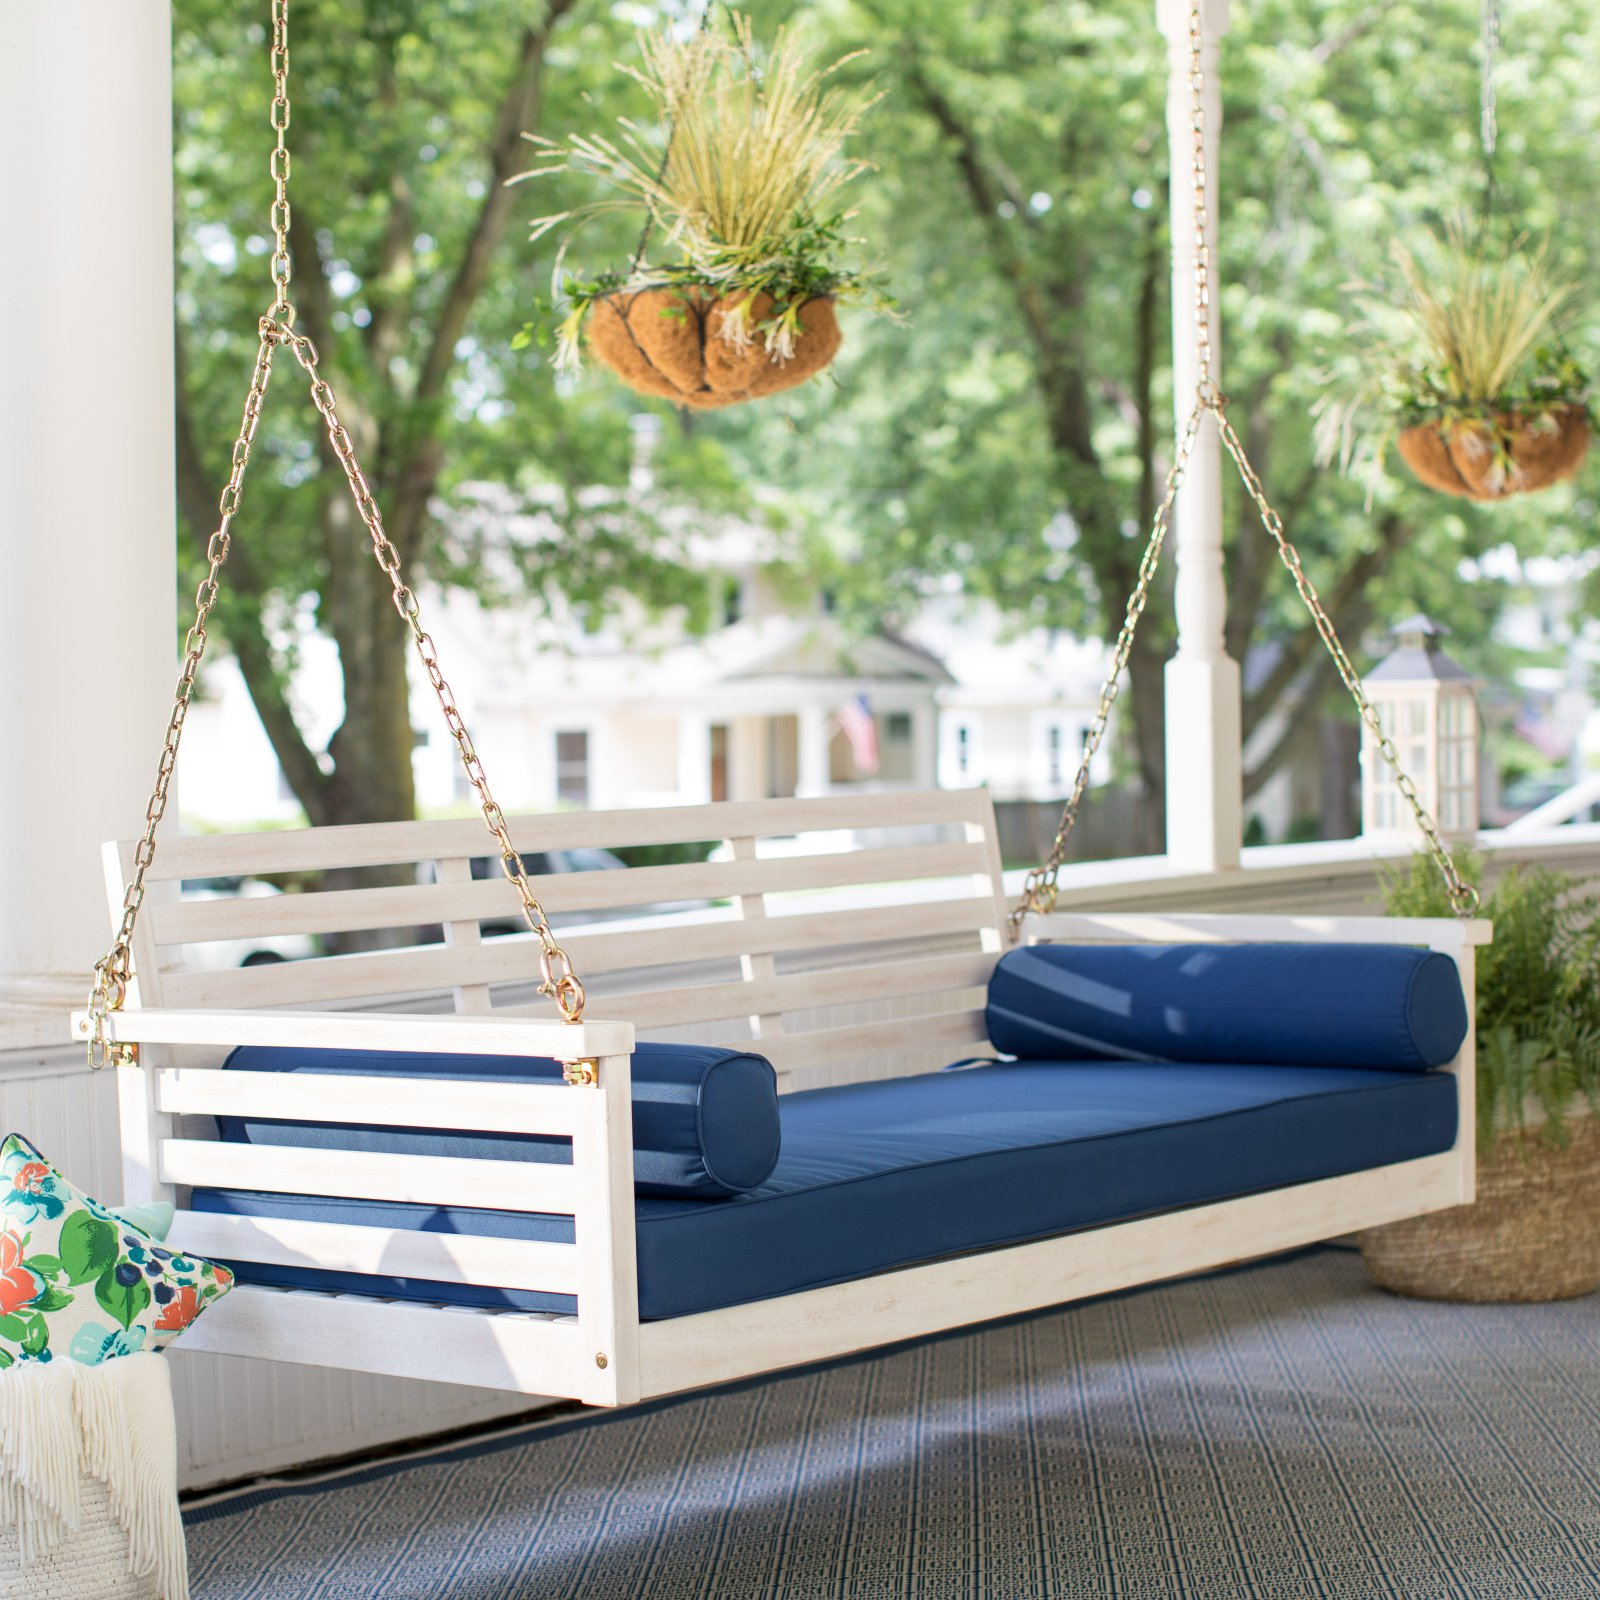 Most Popular Belham Living Brighton Beach Deep Seating Porch Swing Bed Intended For Nautical Porch Swings (Gallery 11 of 30)